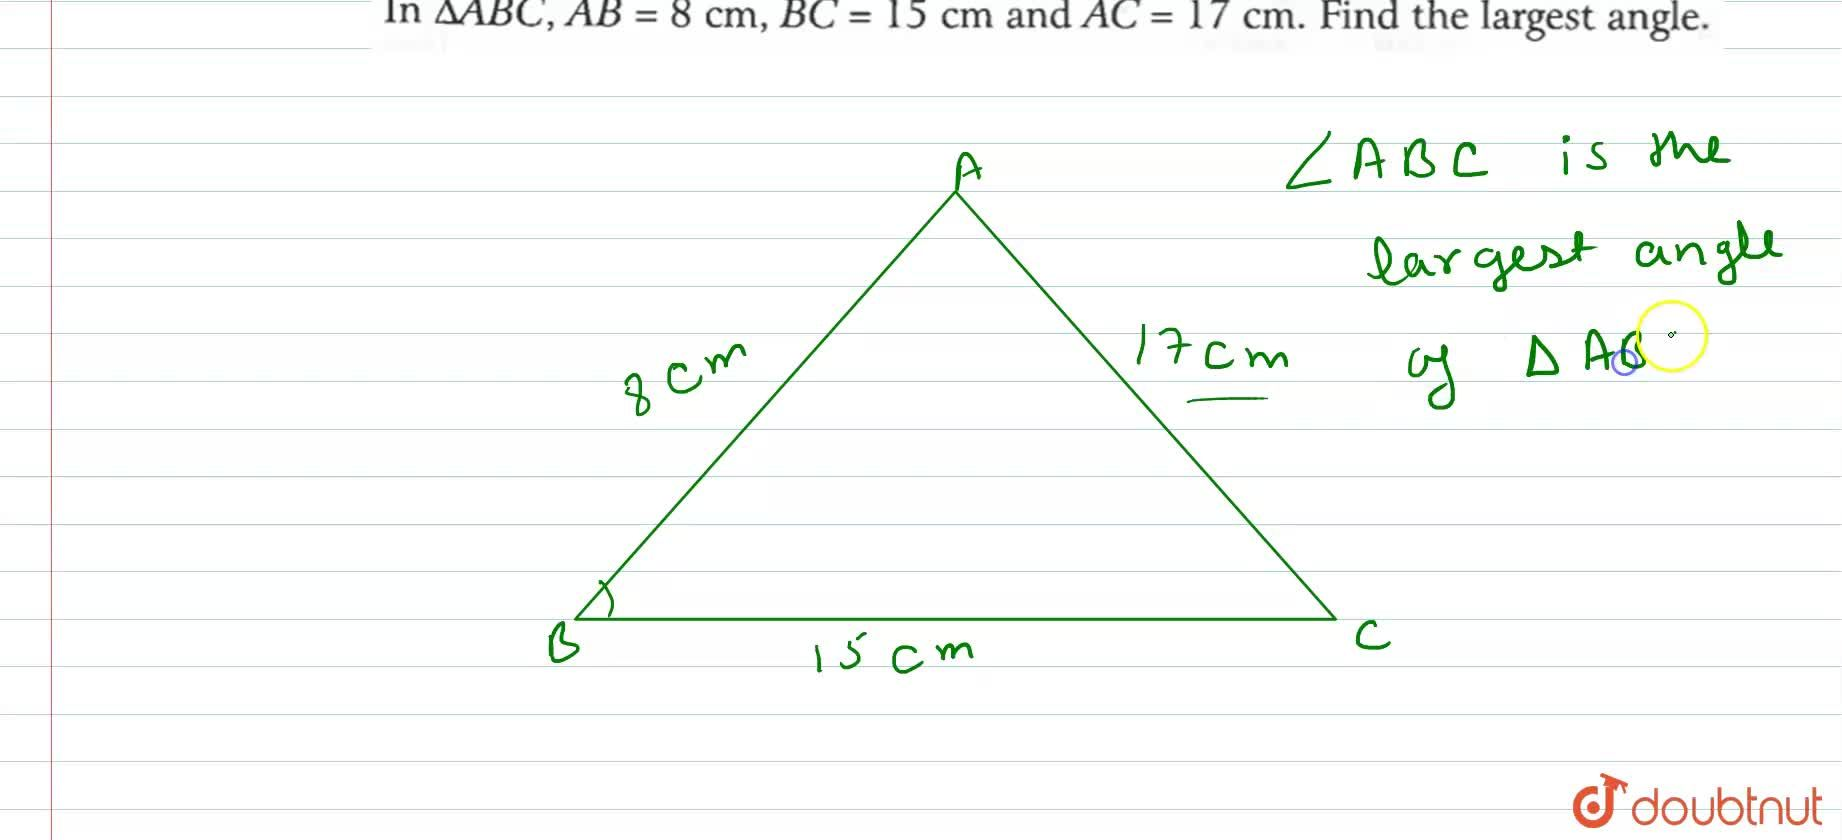 In DeltaABC, AB = 8 cm, BC=15 cm and AC = 17 cm. find the largest angle.